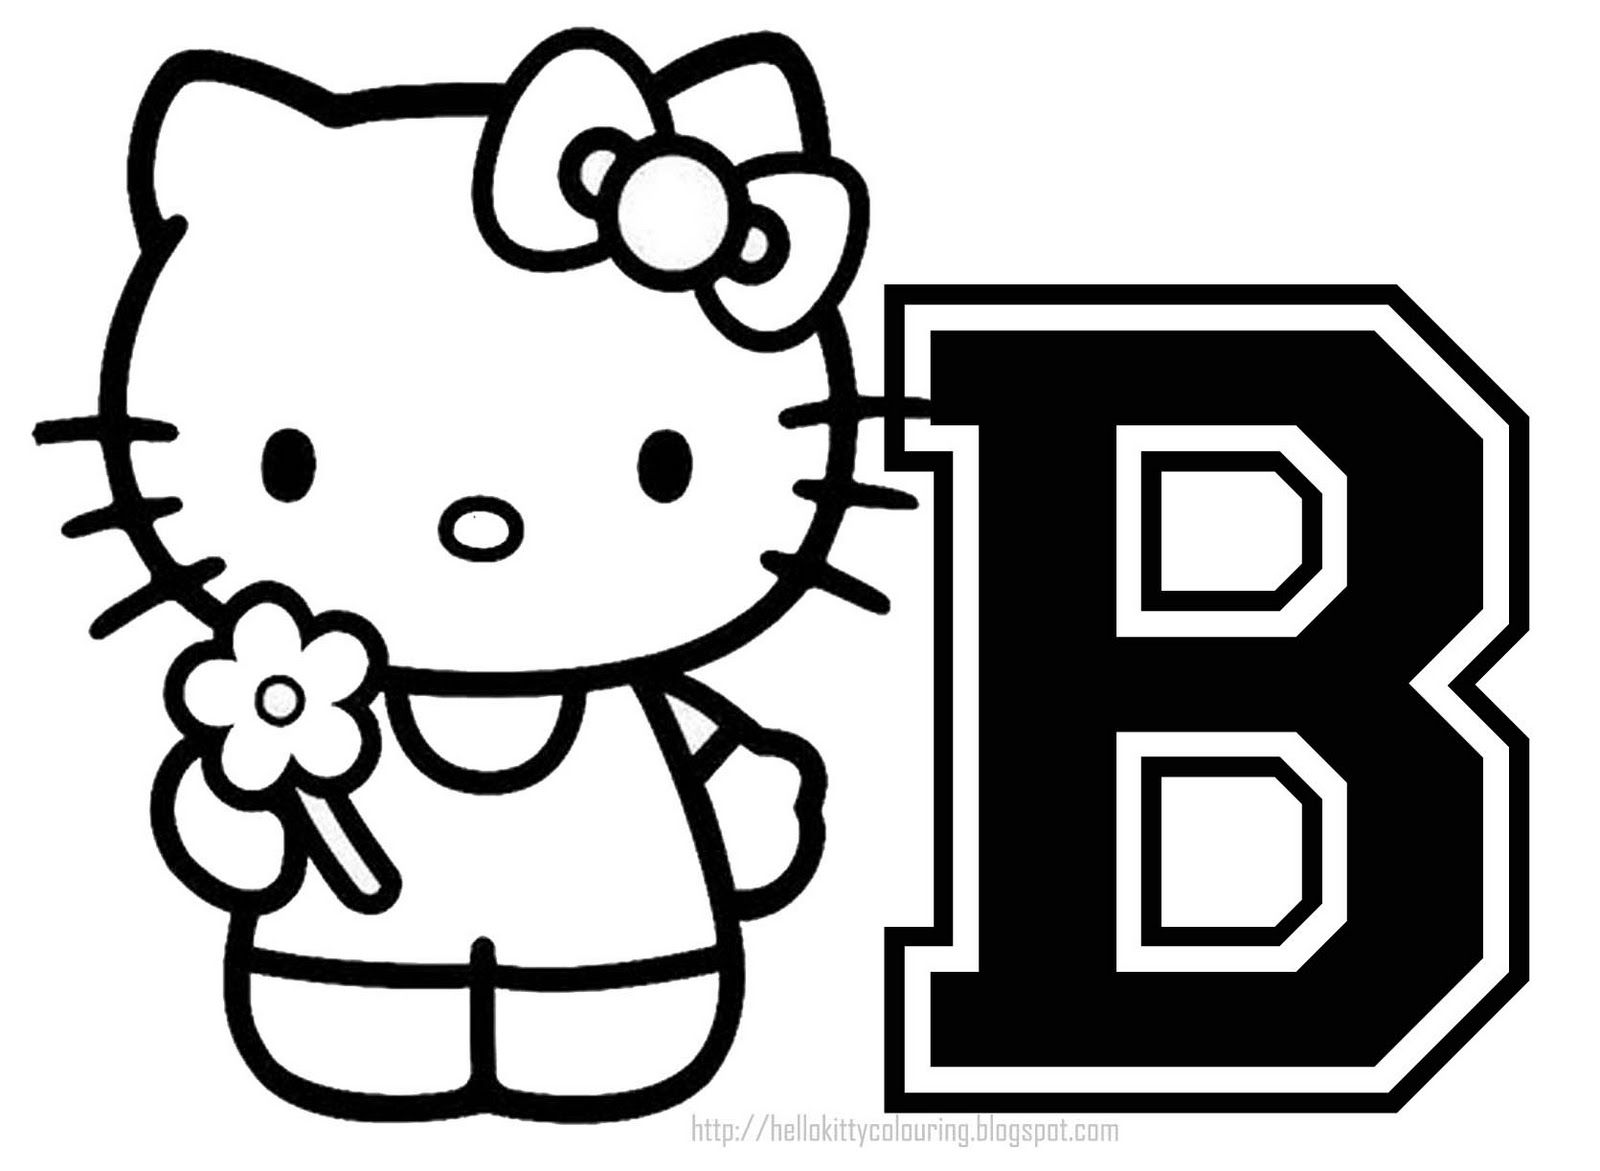 Coloring book pages letter m - Free Printable Hello Kitty Coloring Pages Party Invitations Activity Sheets And Paper Crafts For Hello Kitty Fans The World Over